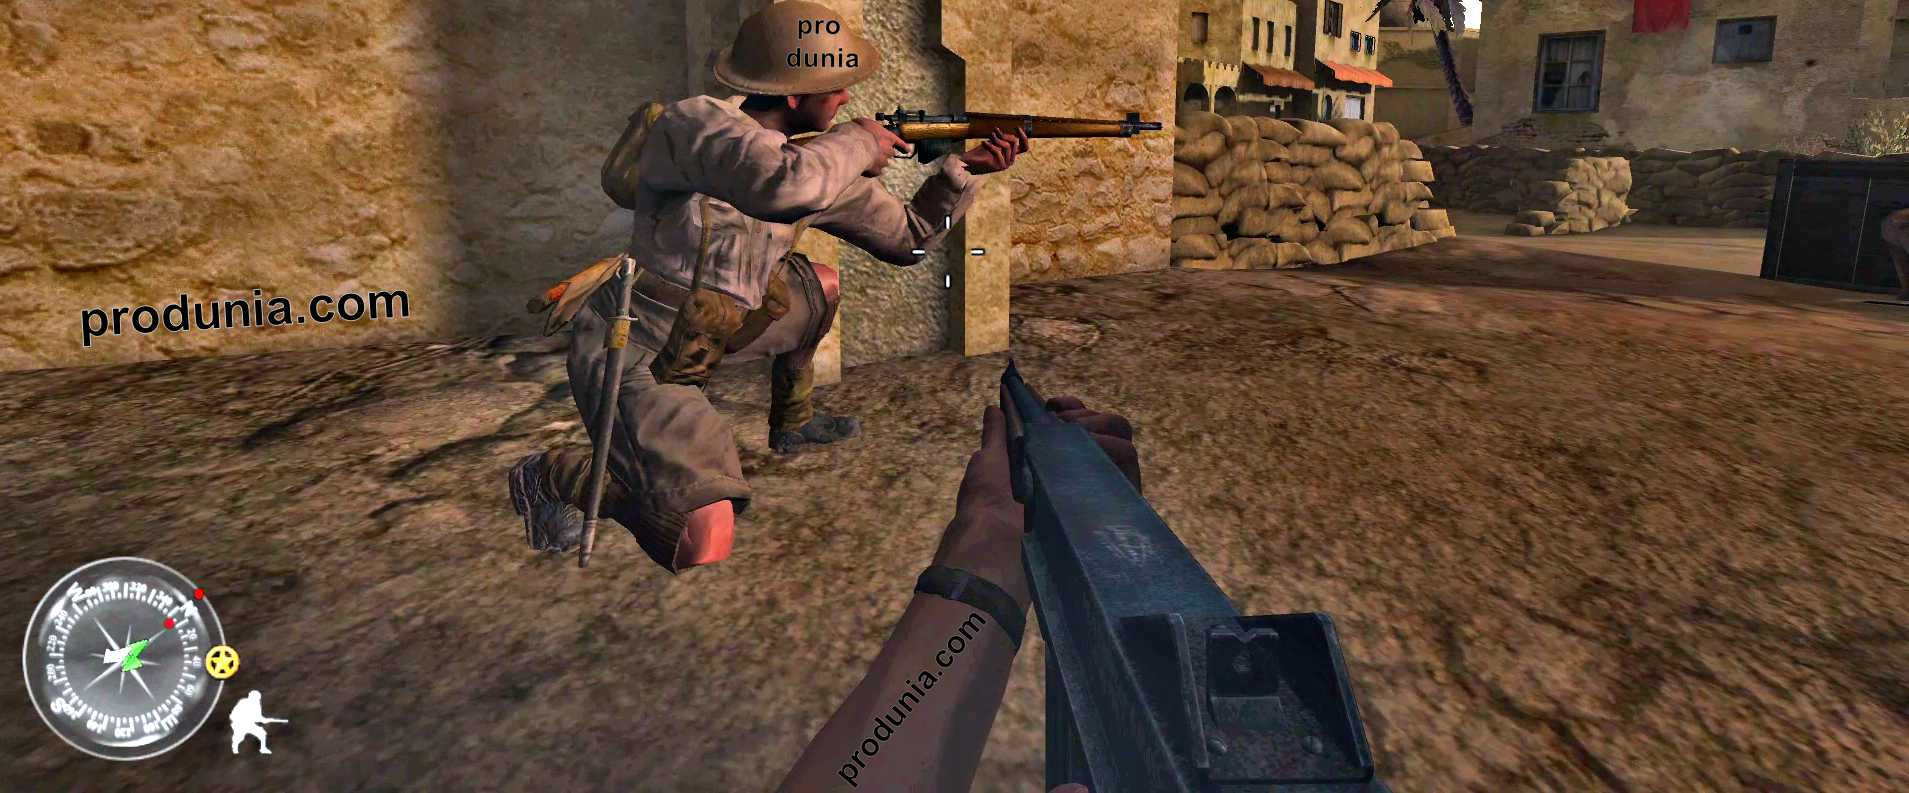 call of duty 2 full pc game download free